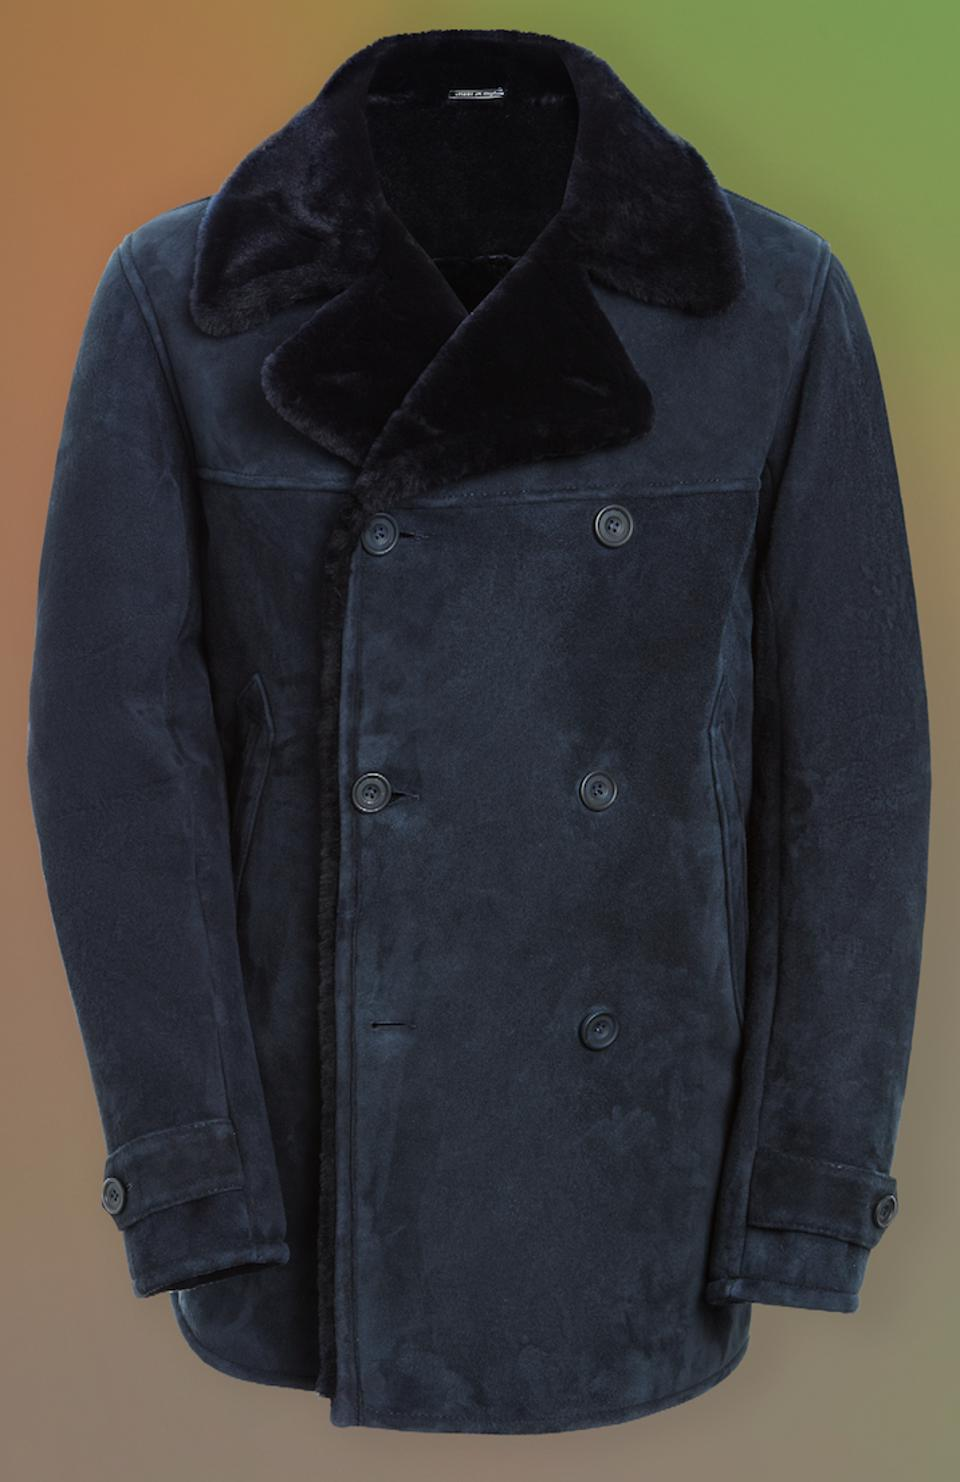 Pea coat in suede shearling by Richard James